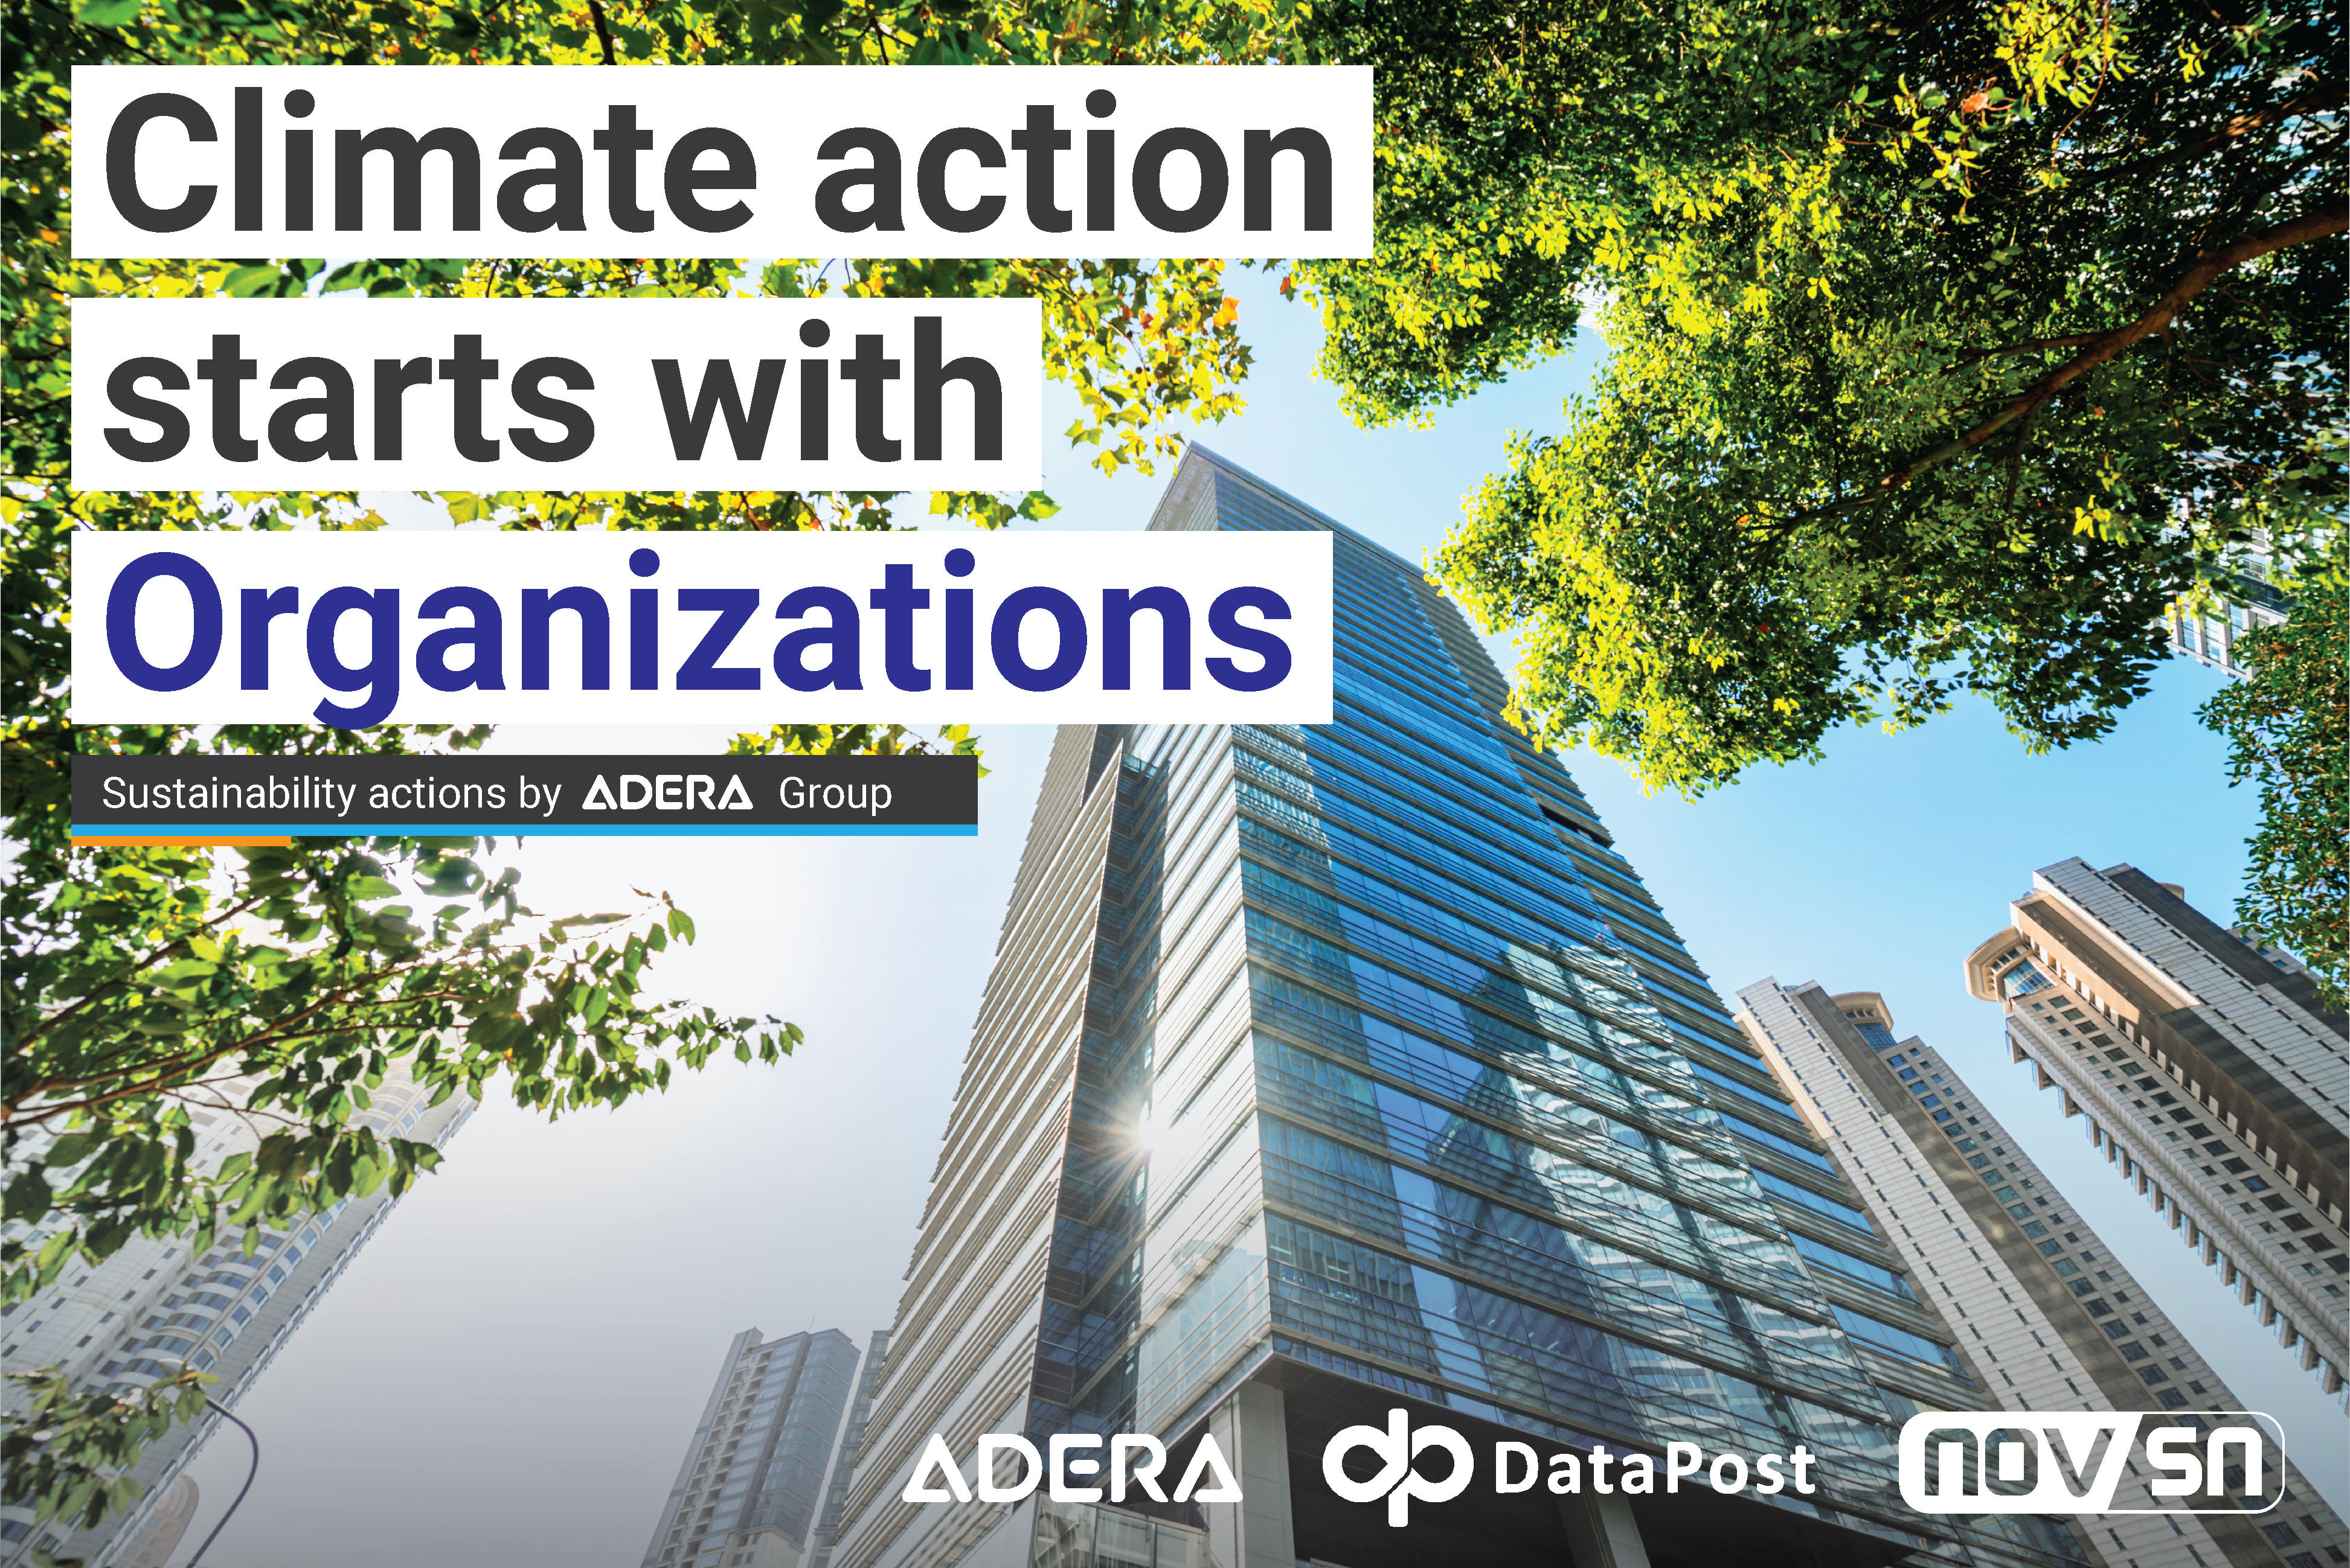 Climate Action start with Organizations